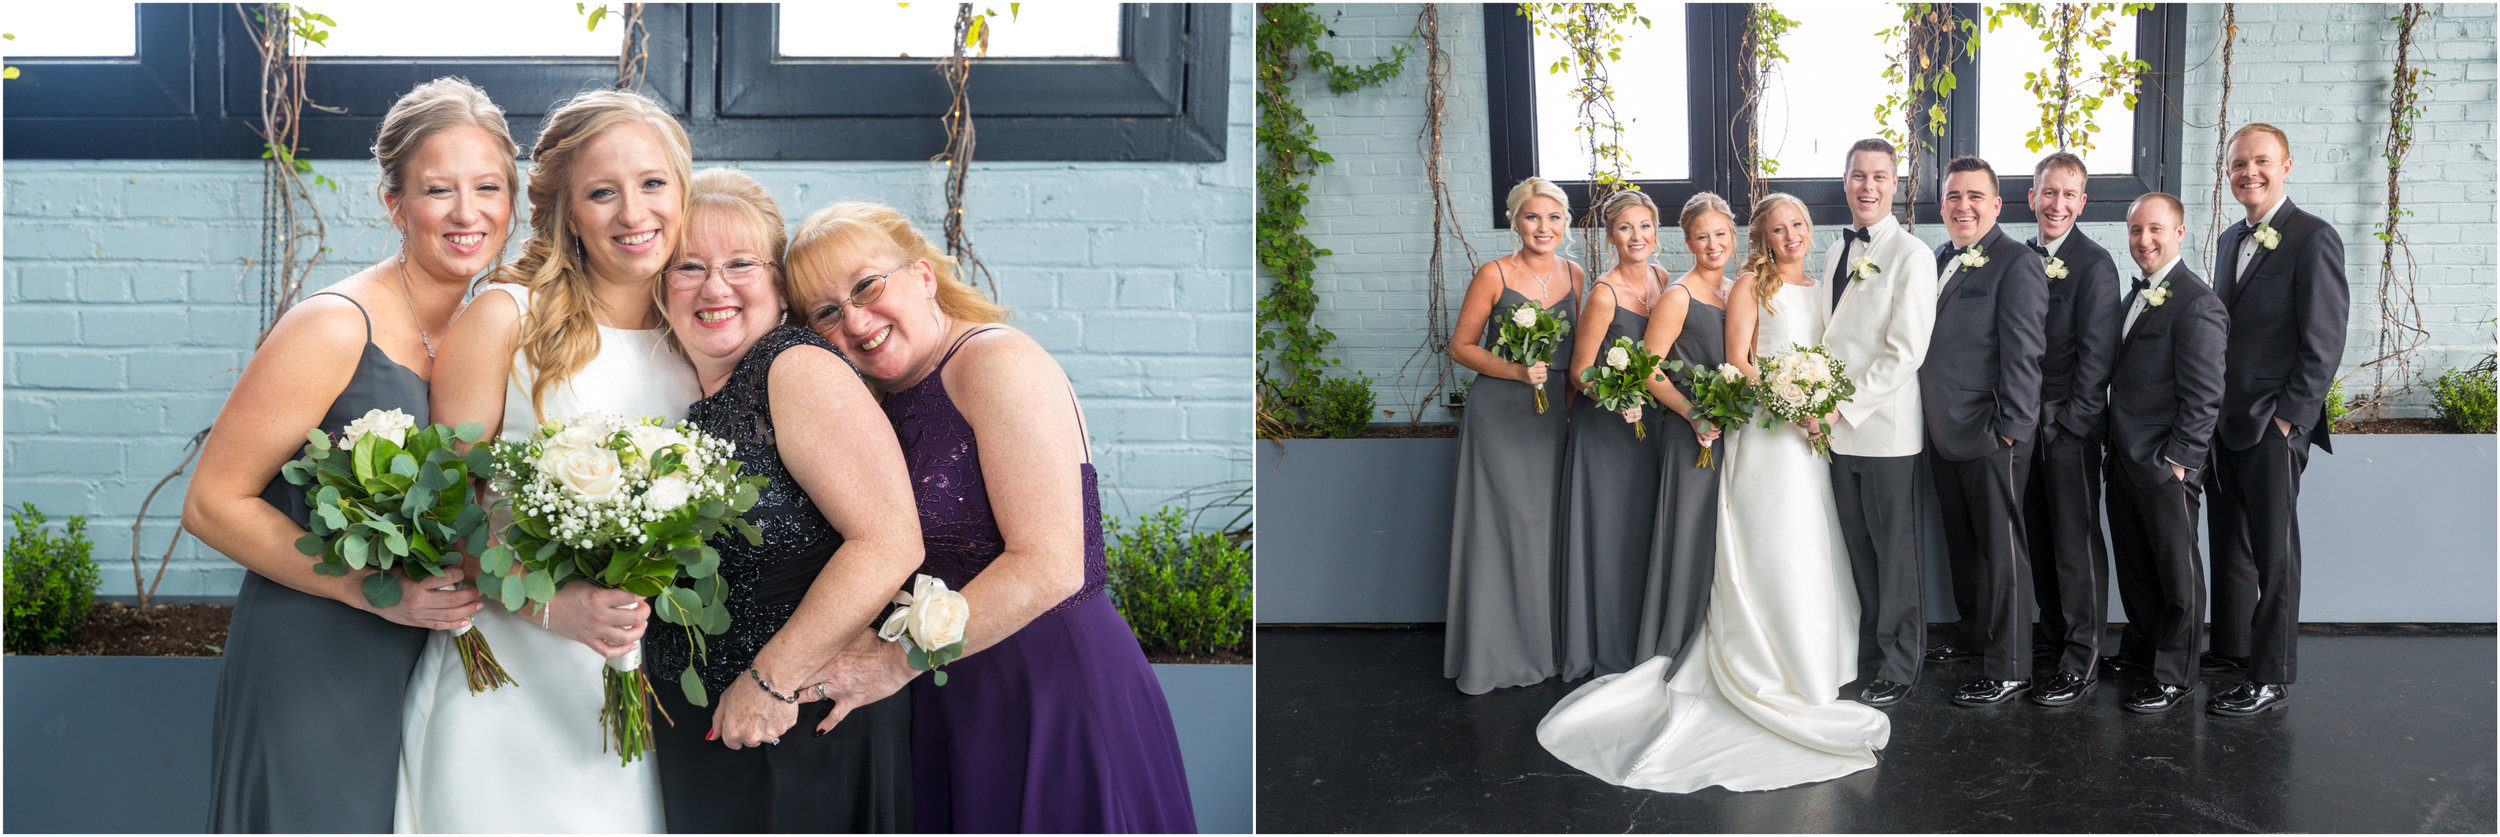 501 Union Wedding Brooklyn Photographer NYC New York-44.jpg